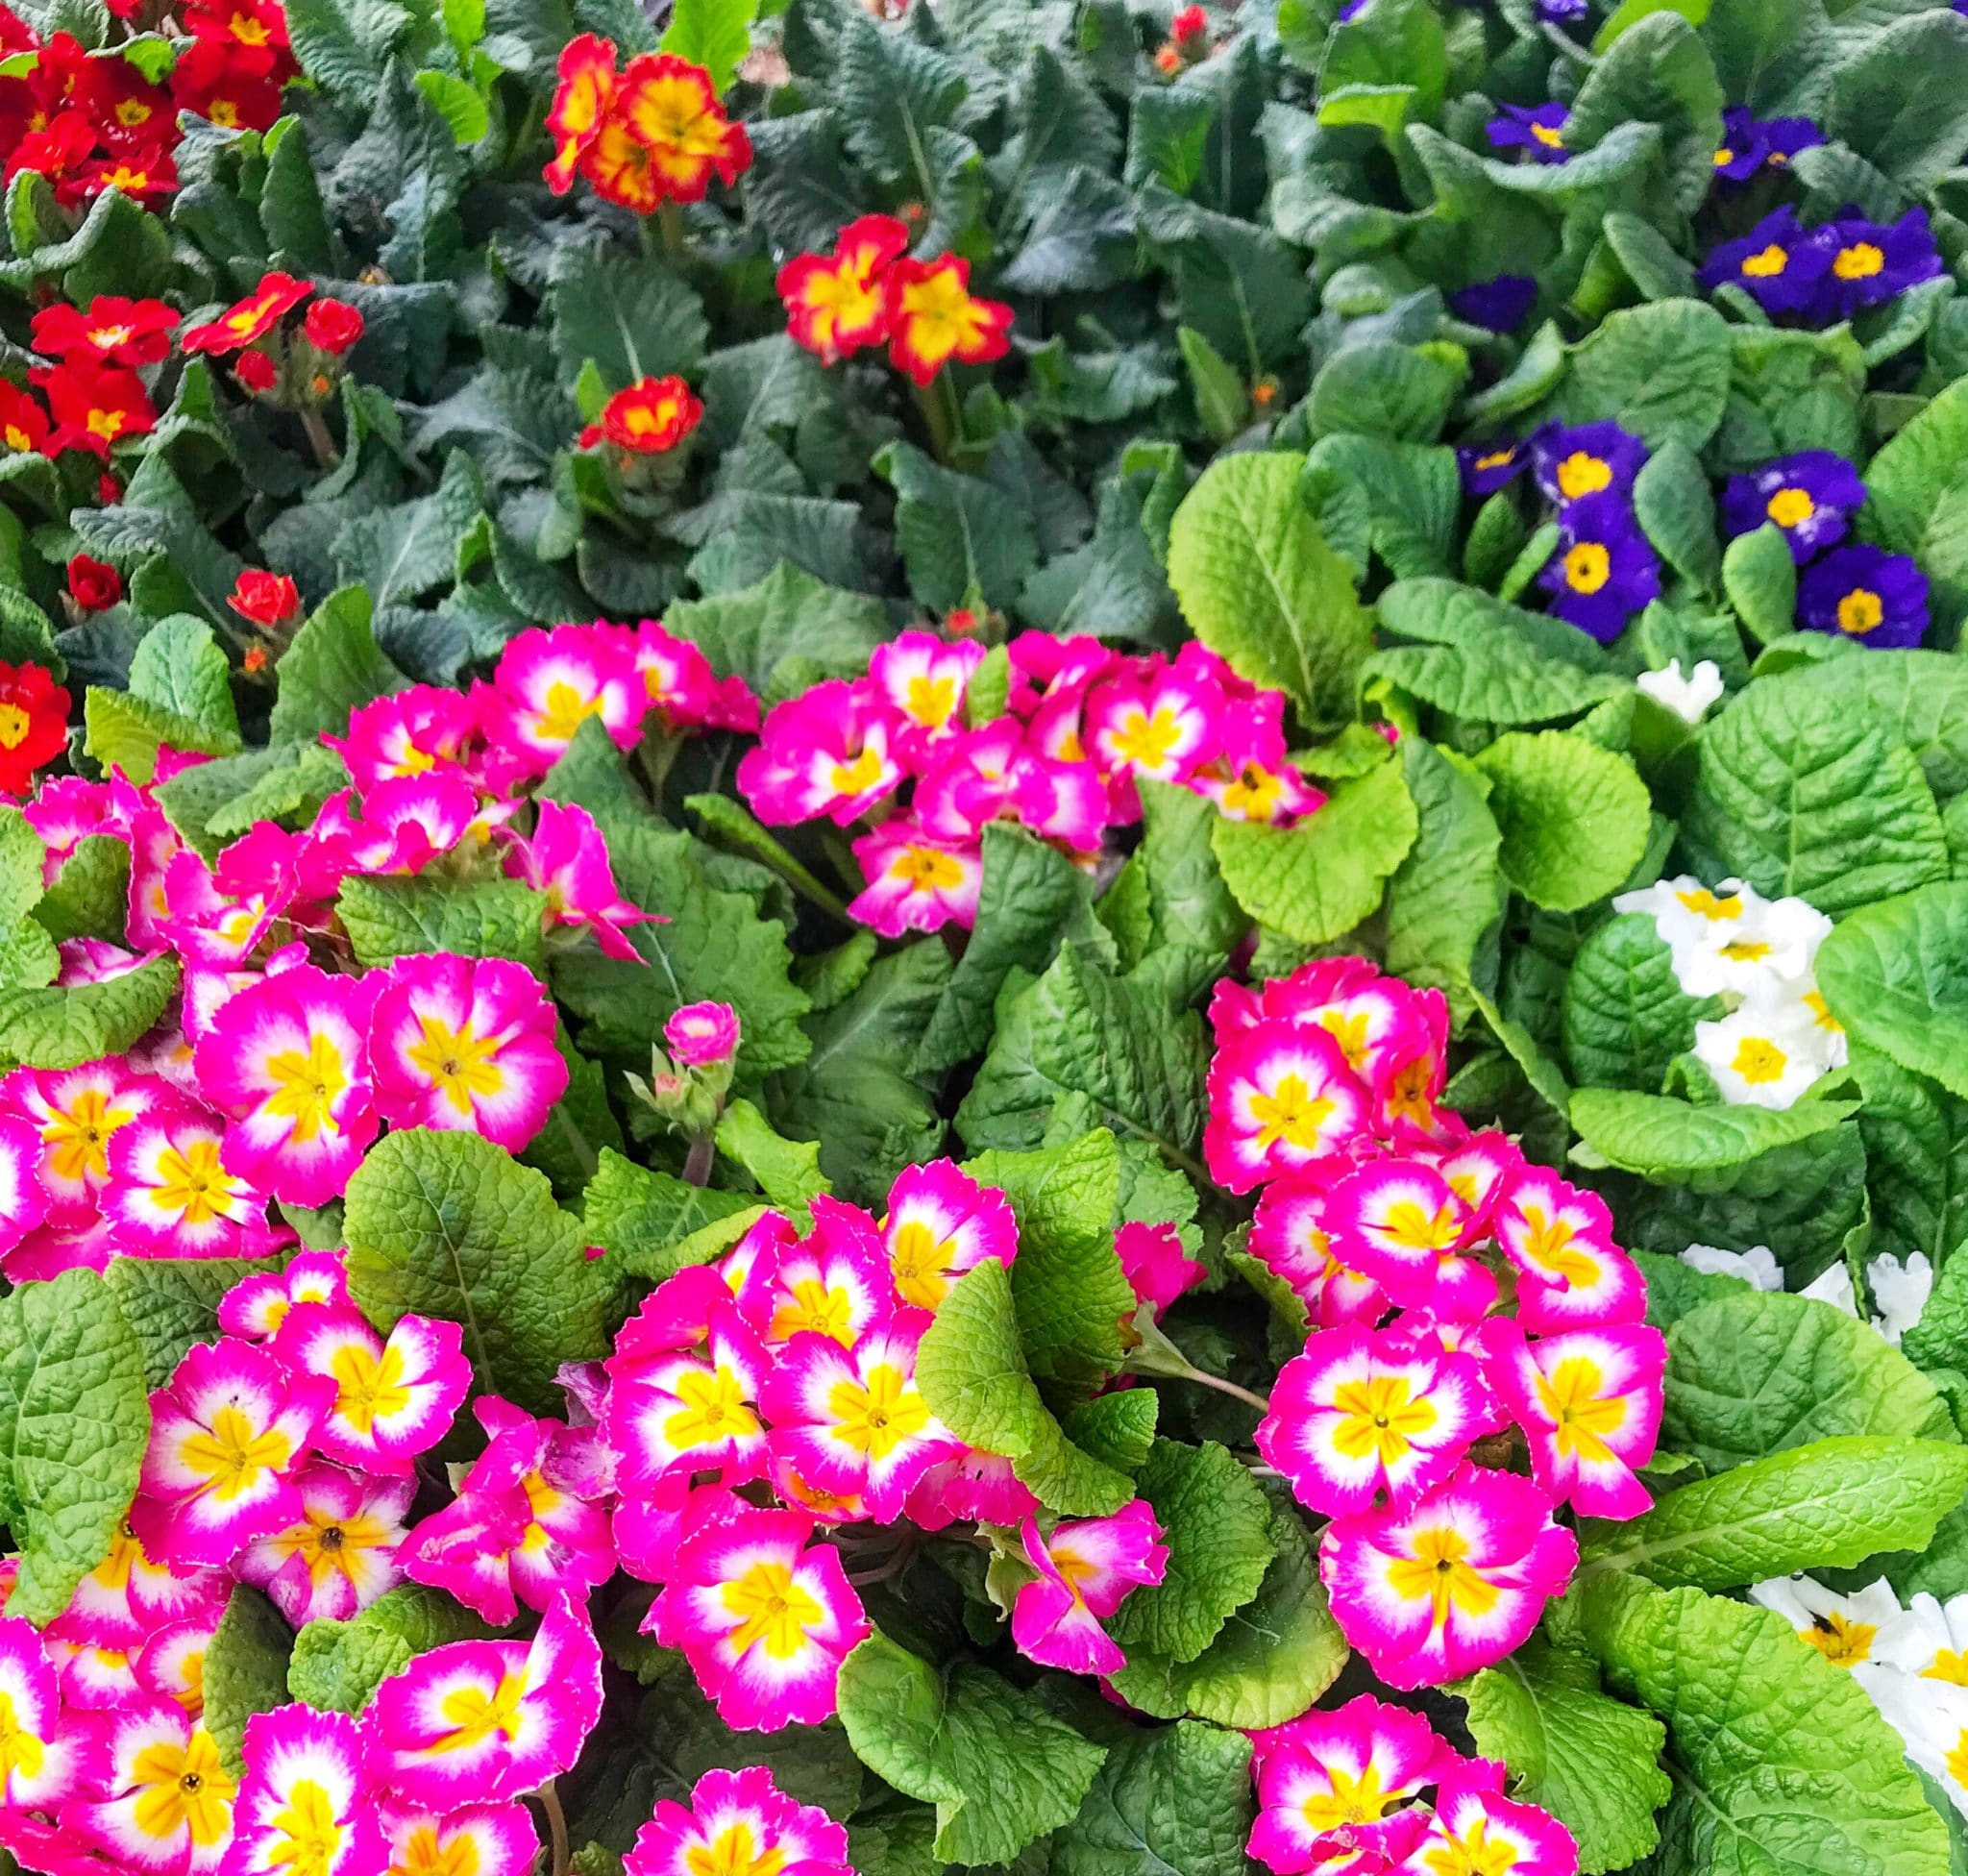 The Important Differences Between Annuals Vs Perennials